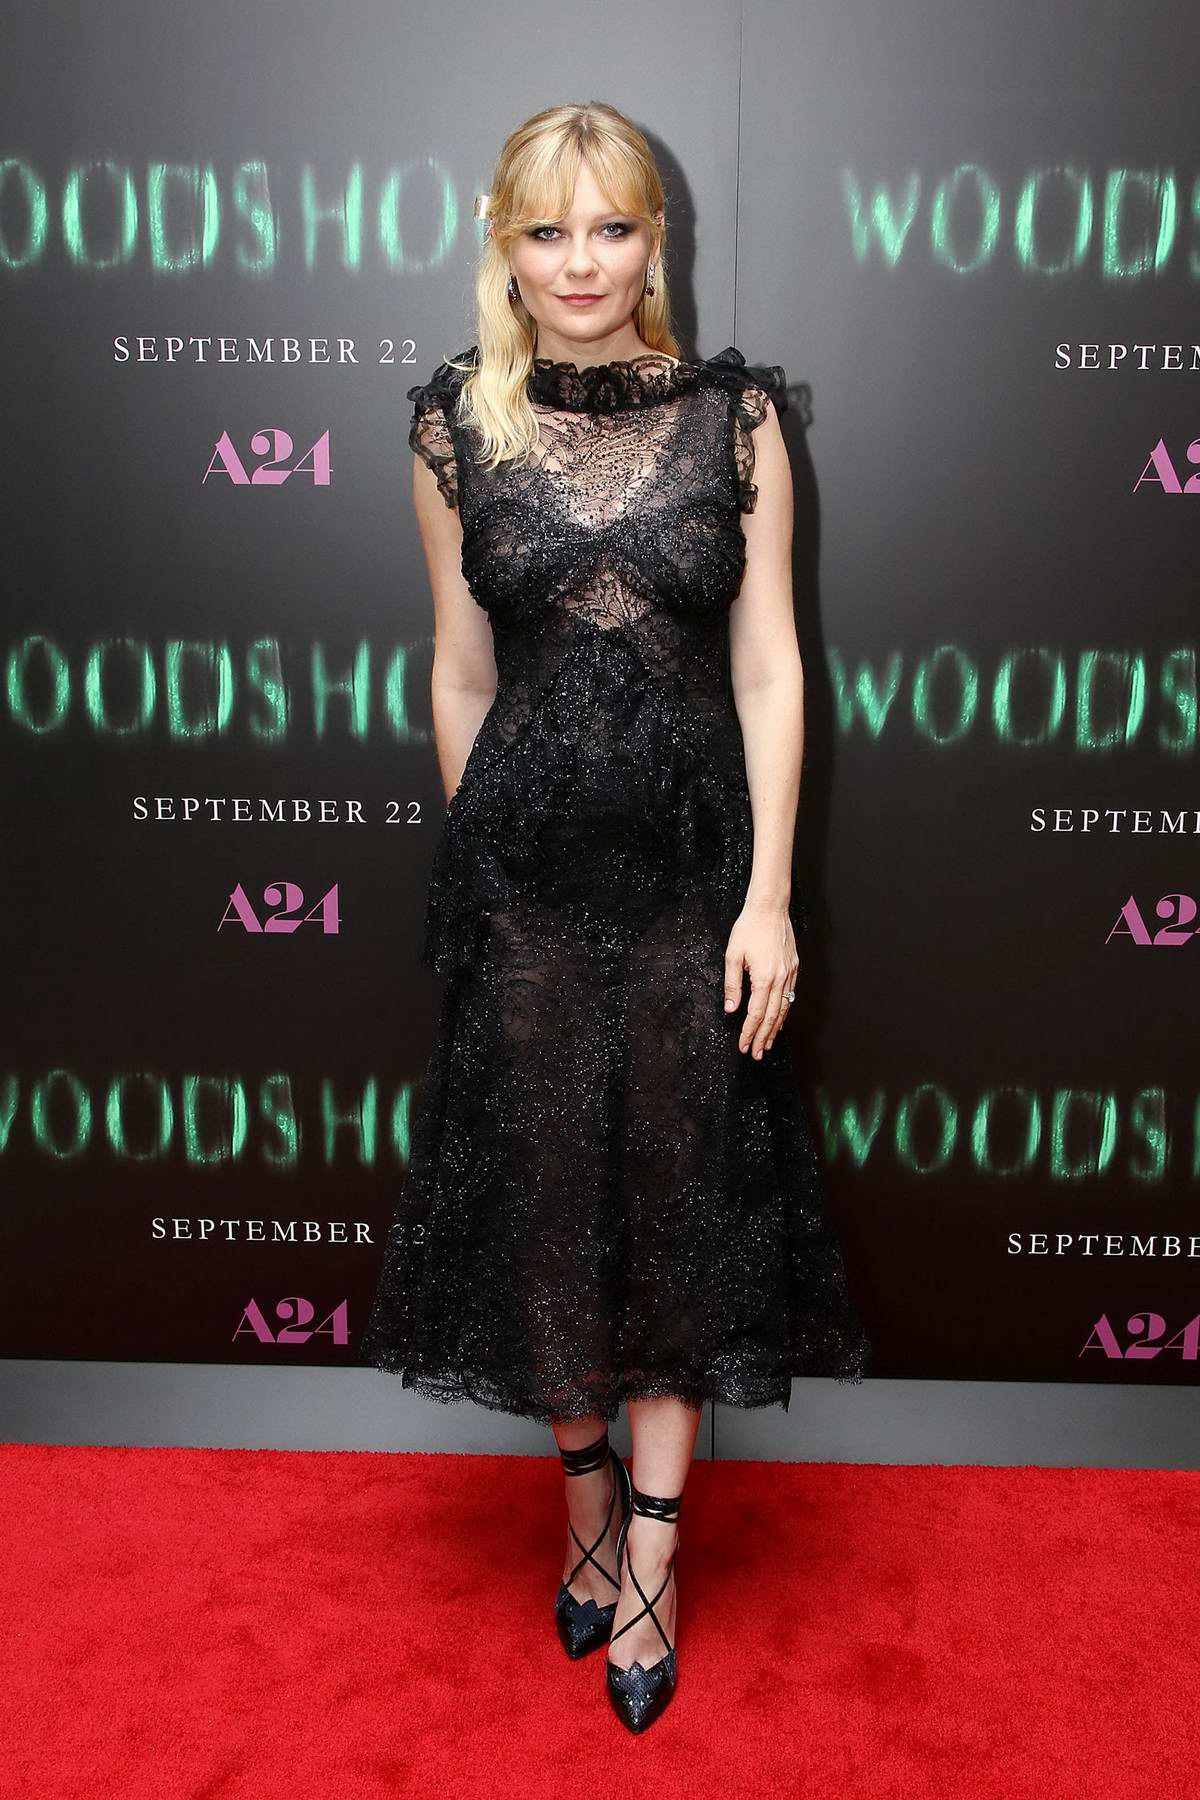 Kirsten Dunst at the screening of 'Woodshock' in New York City